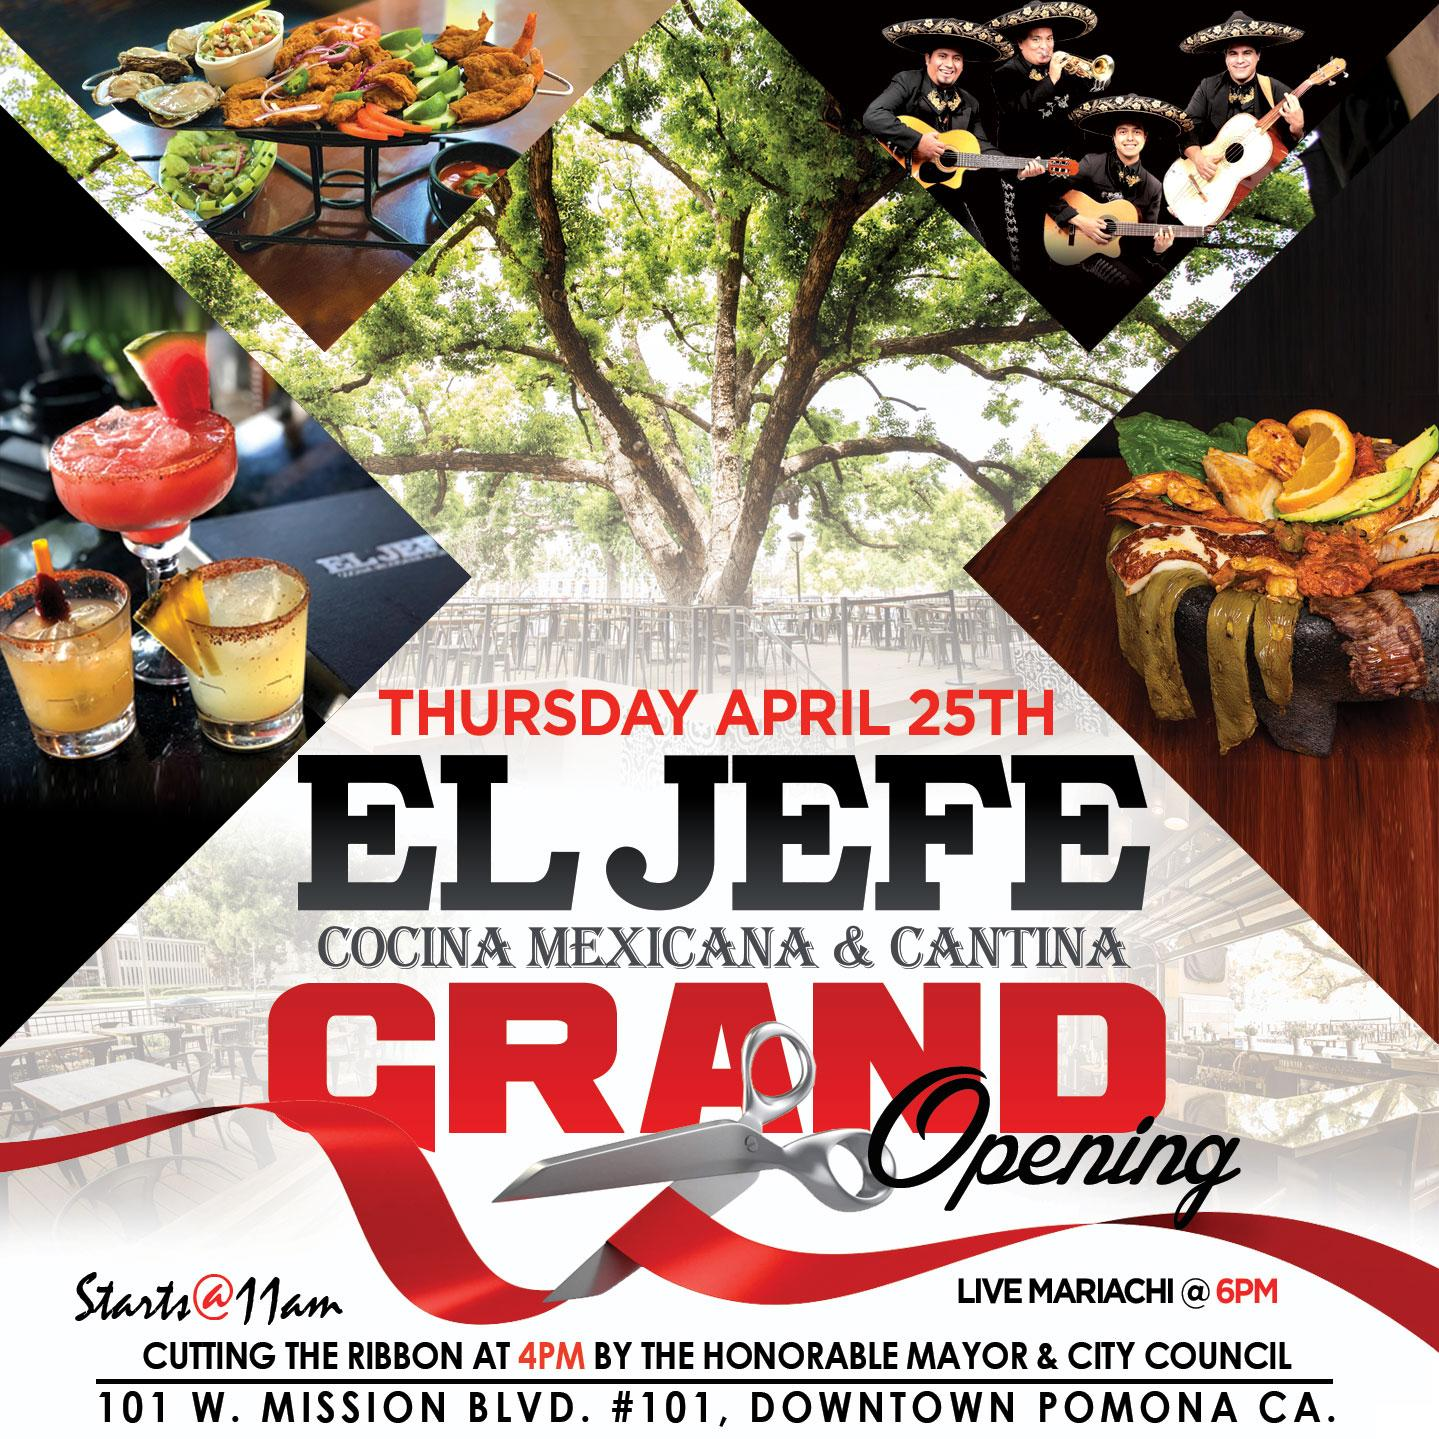 Thursday, April 25 - Thursday, April 25 is the Grand Opening of El Jefe Cocina Mexicana y Cantina. A ribbing cutting will begin at 4pm followed by live mariachi at 6pm.